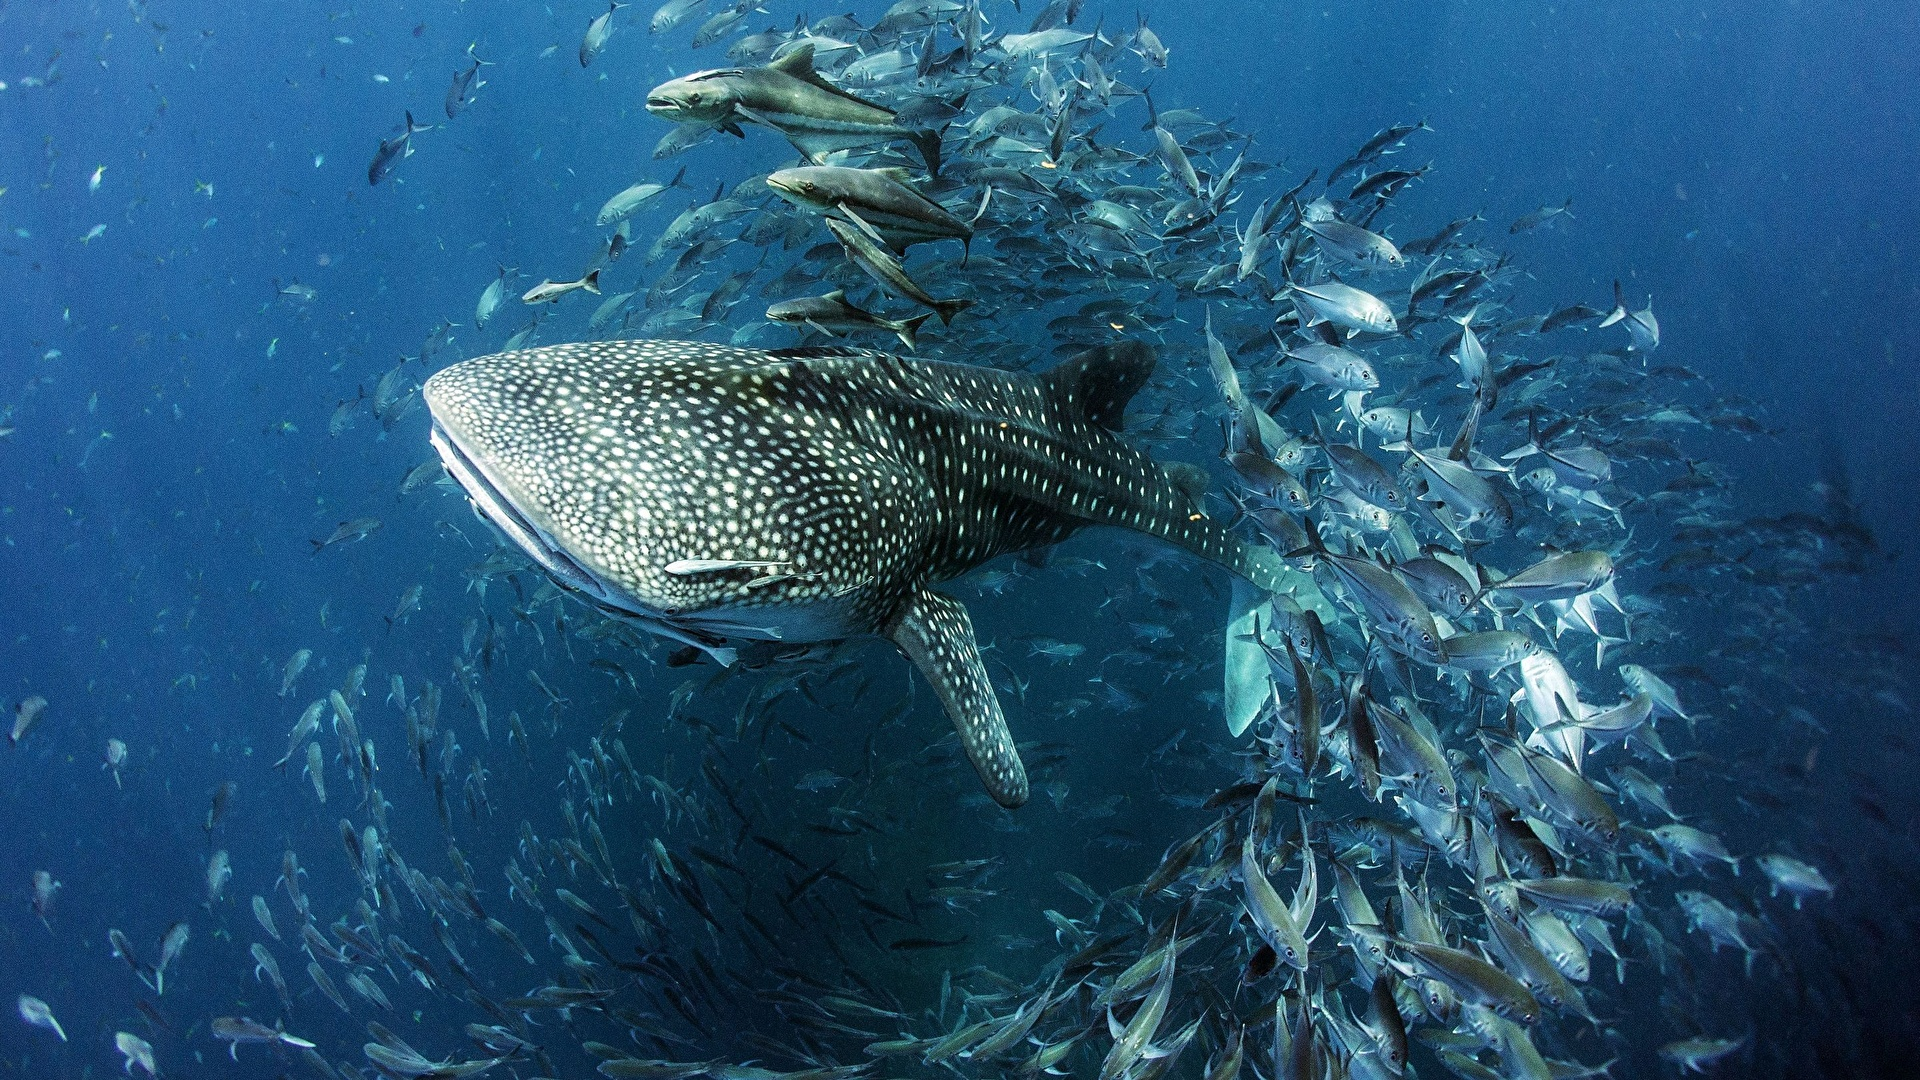 Photos Fish Sharks Underwater World Whale Shark Animal 1920x1080